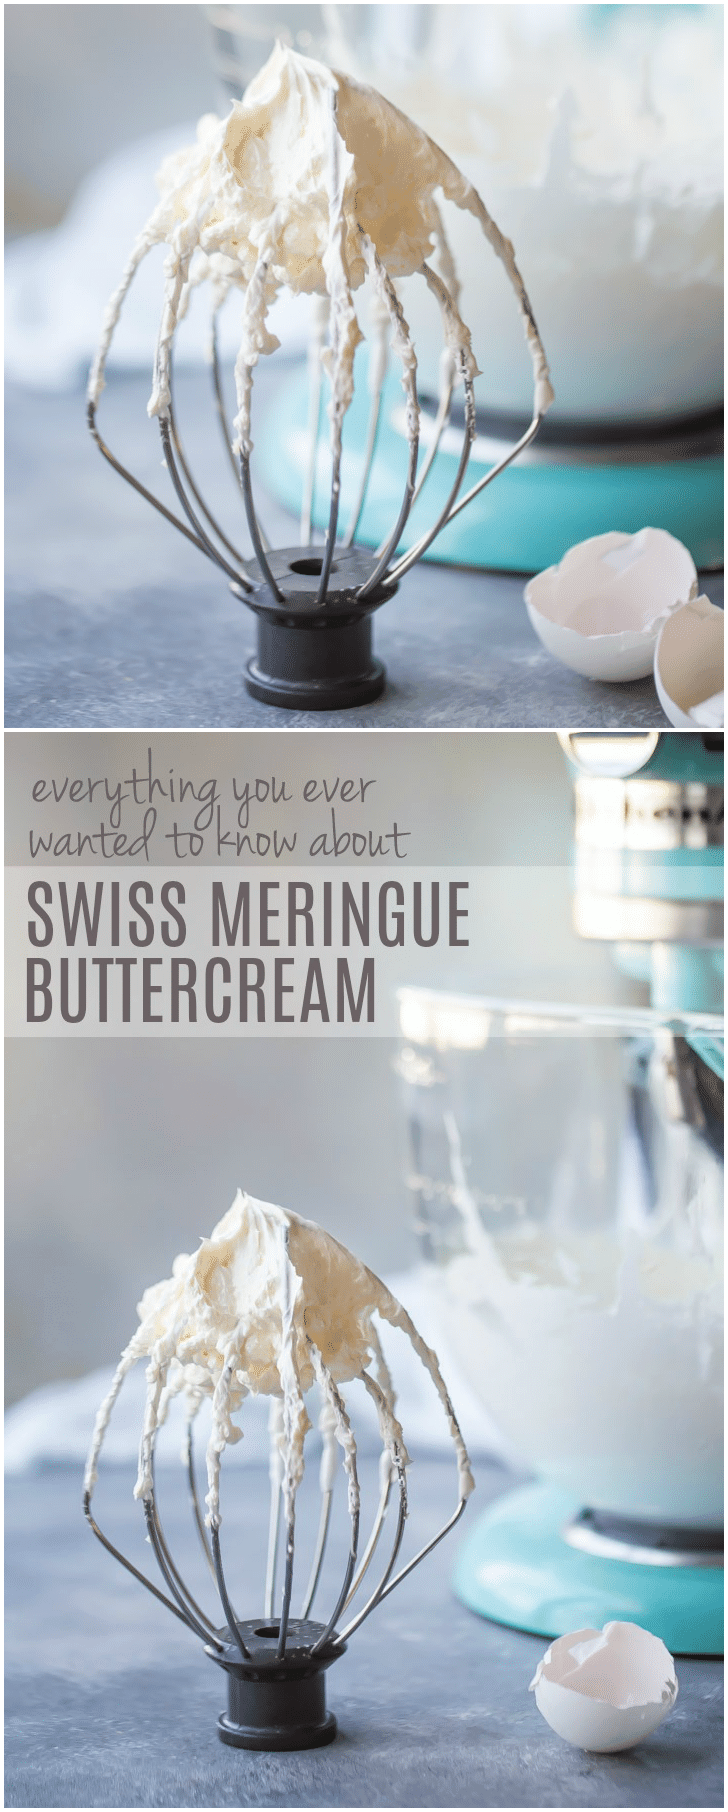 Everything you've ever wanted to know about Swiss meringue buttercream: from how it's made and stored, to what to use it for, and how to flavor it in all sorts of ways. You'll love this light, silky frosting so much! #frosting #icing #recipe #vanilla #chocolate #cake #swissmeringue #strawberry #decorating #raspberry #flavors #filling #howtomake #techniques #tutorial #smooth #ideas